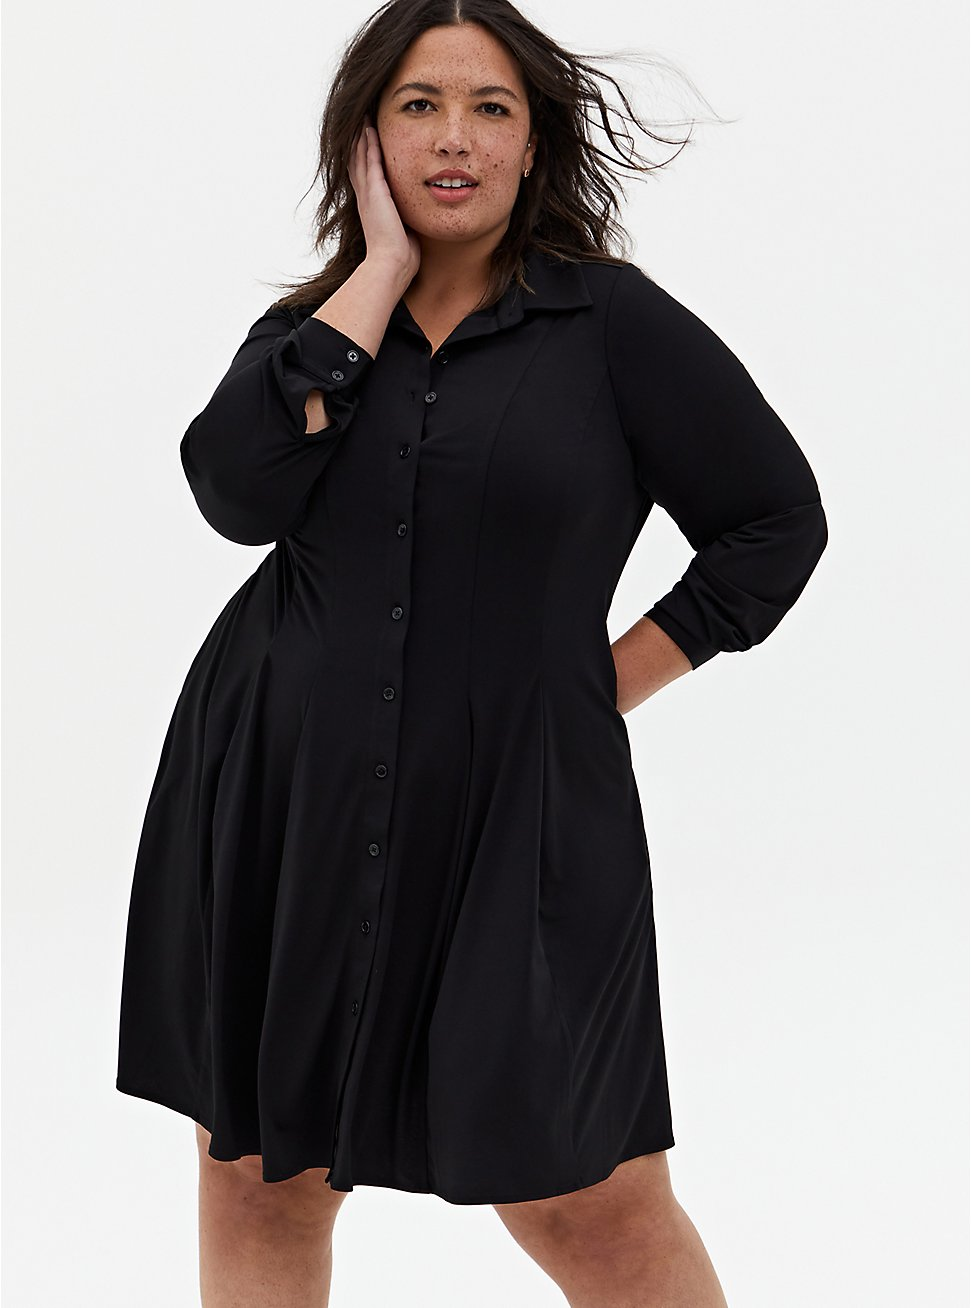 Black Studio Knit A-Line Shirt Dress, DEEP BLACK, hi-res